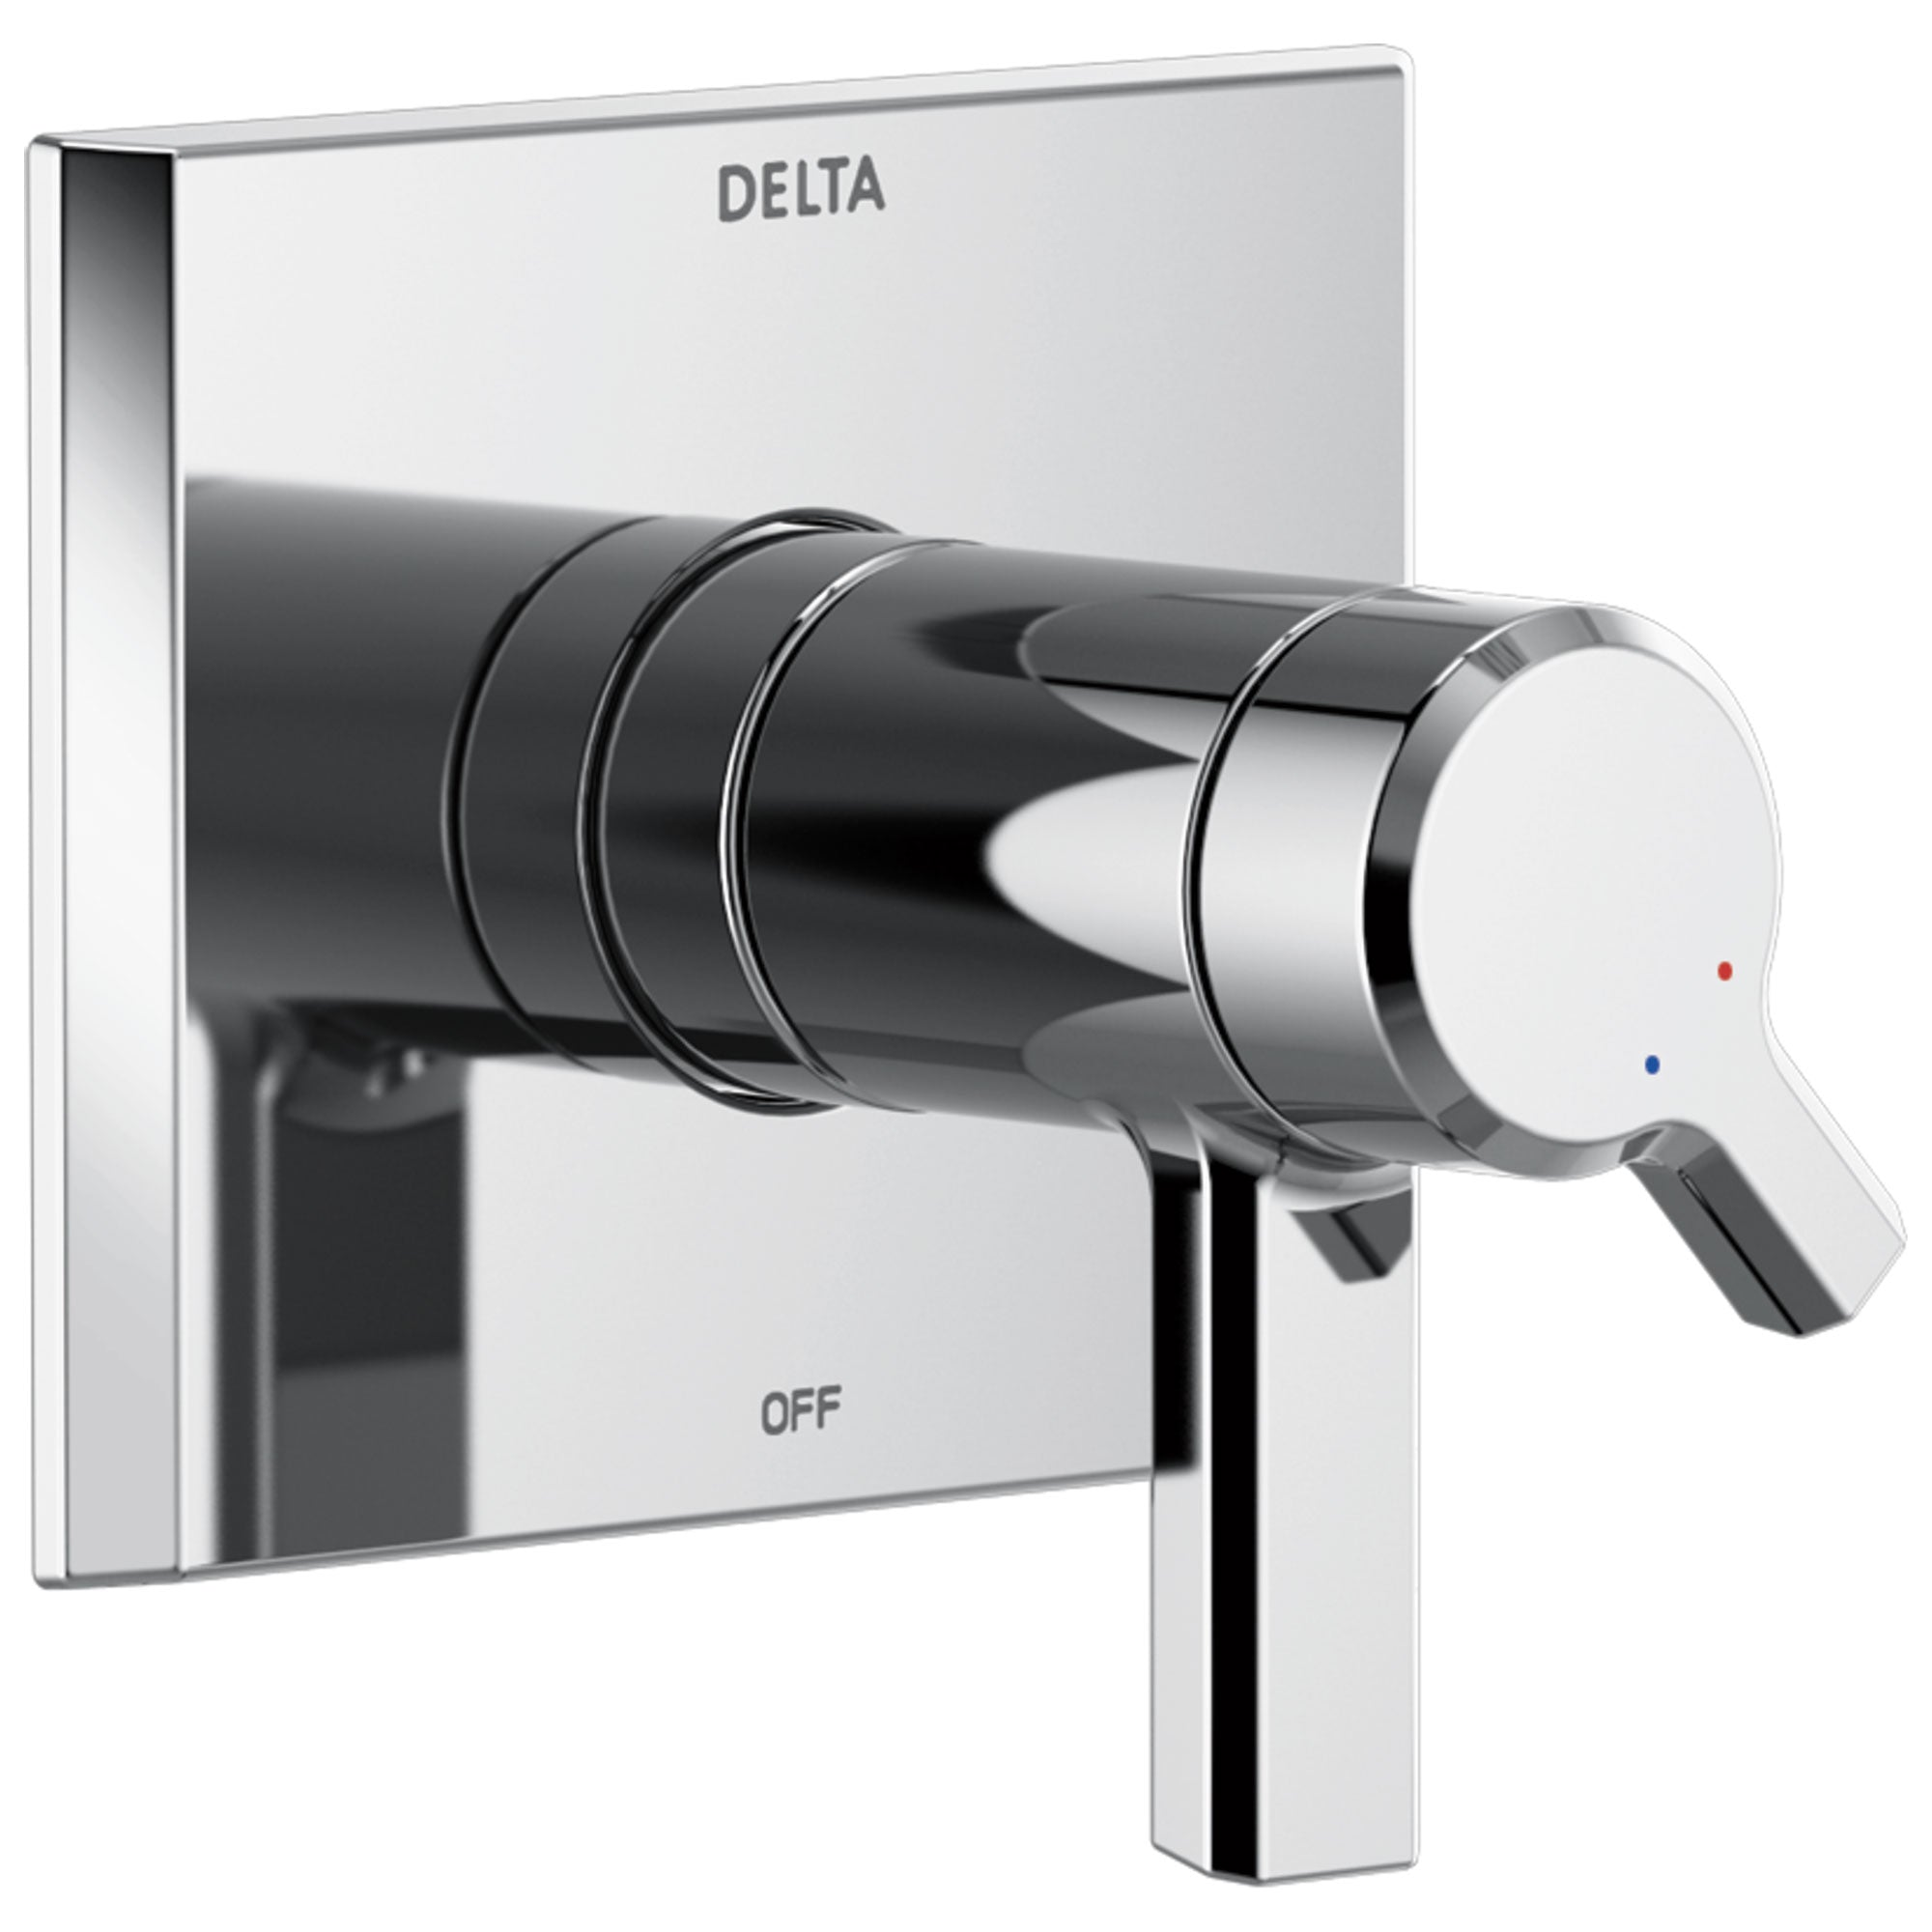 Delta Pivotal Chrome Finish TempAssure 17T Series Shower Faucet Control Only Trim Kit (Requires Valve) DT17T099